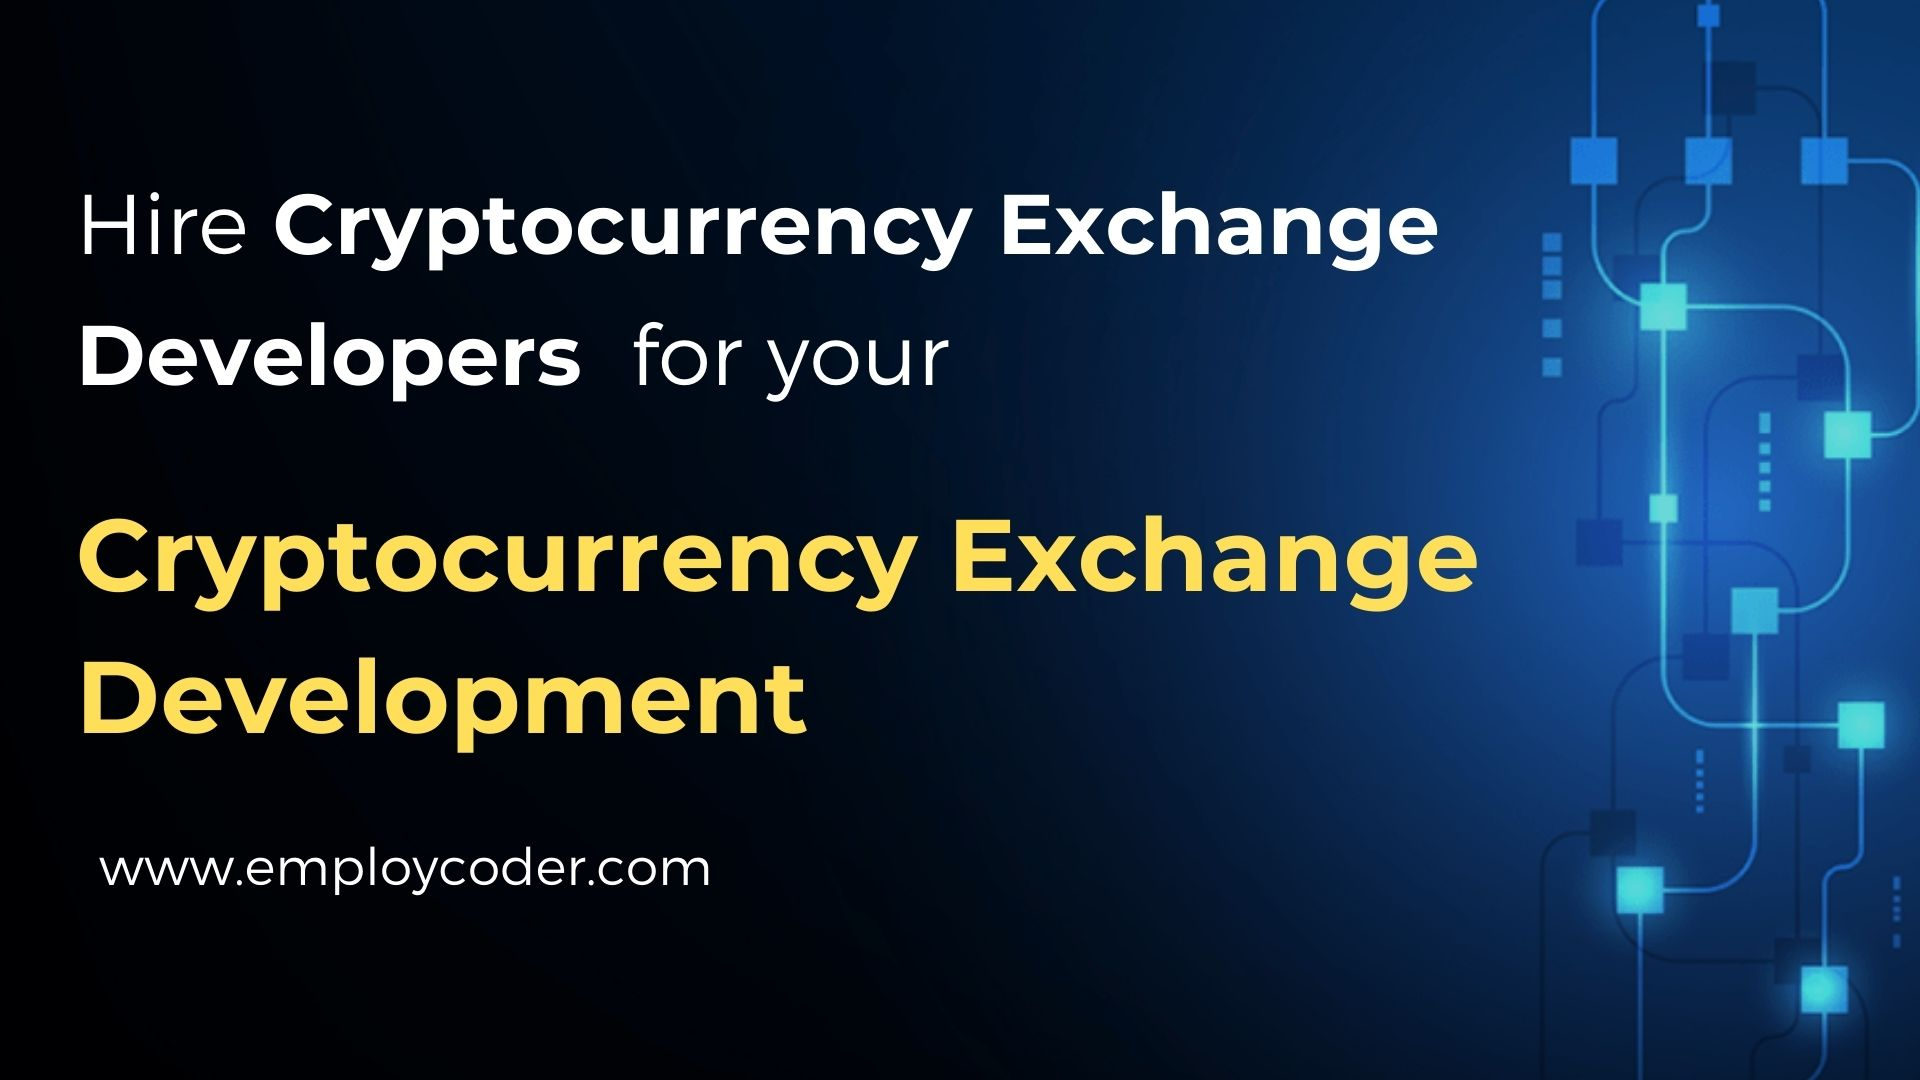 Hire Cryptocurrency Exchange Developers To Create Your Own Cryptocurrency Exchange